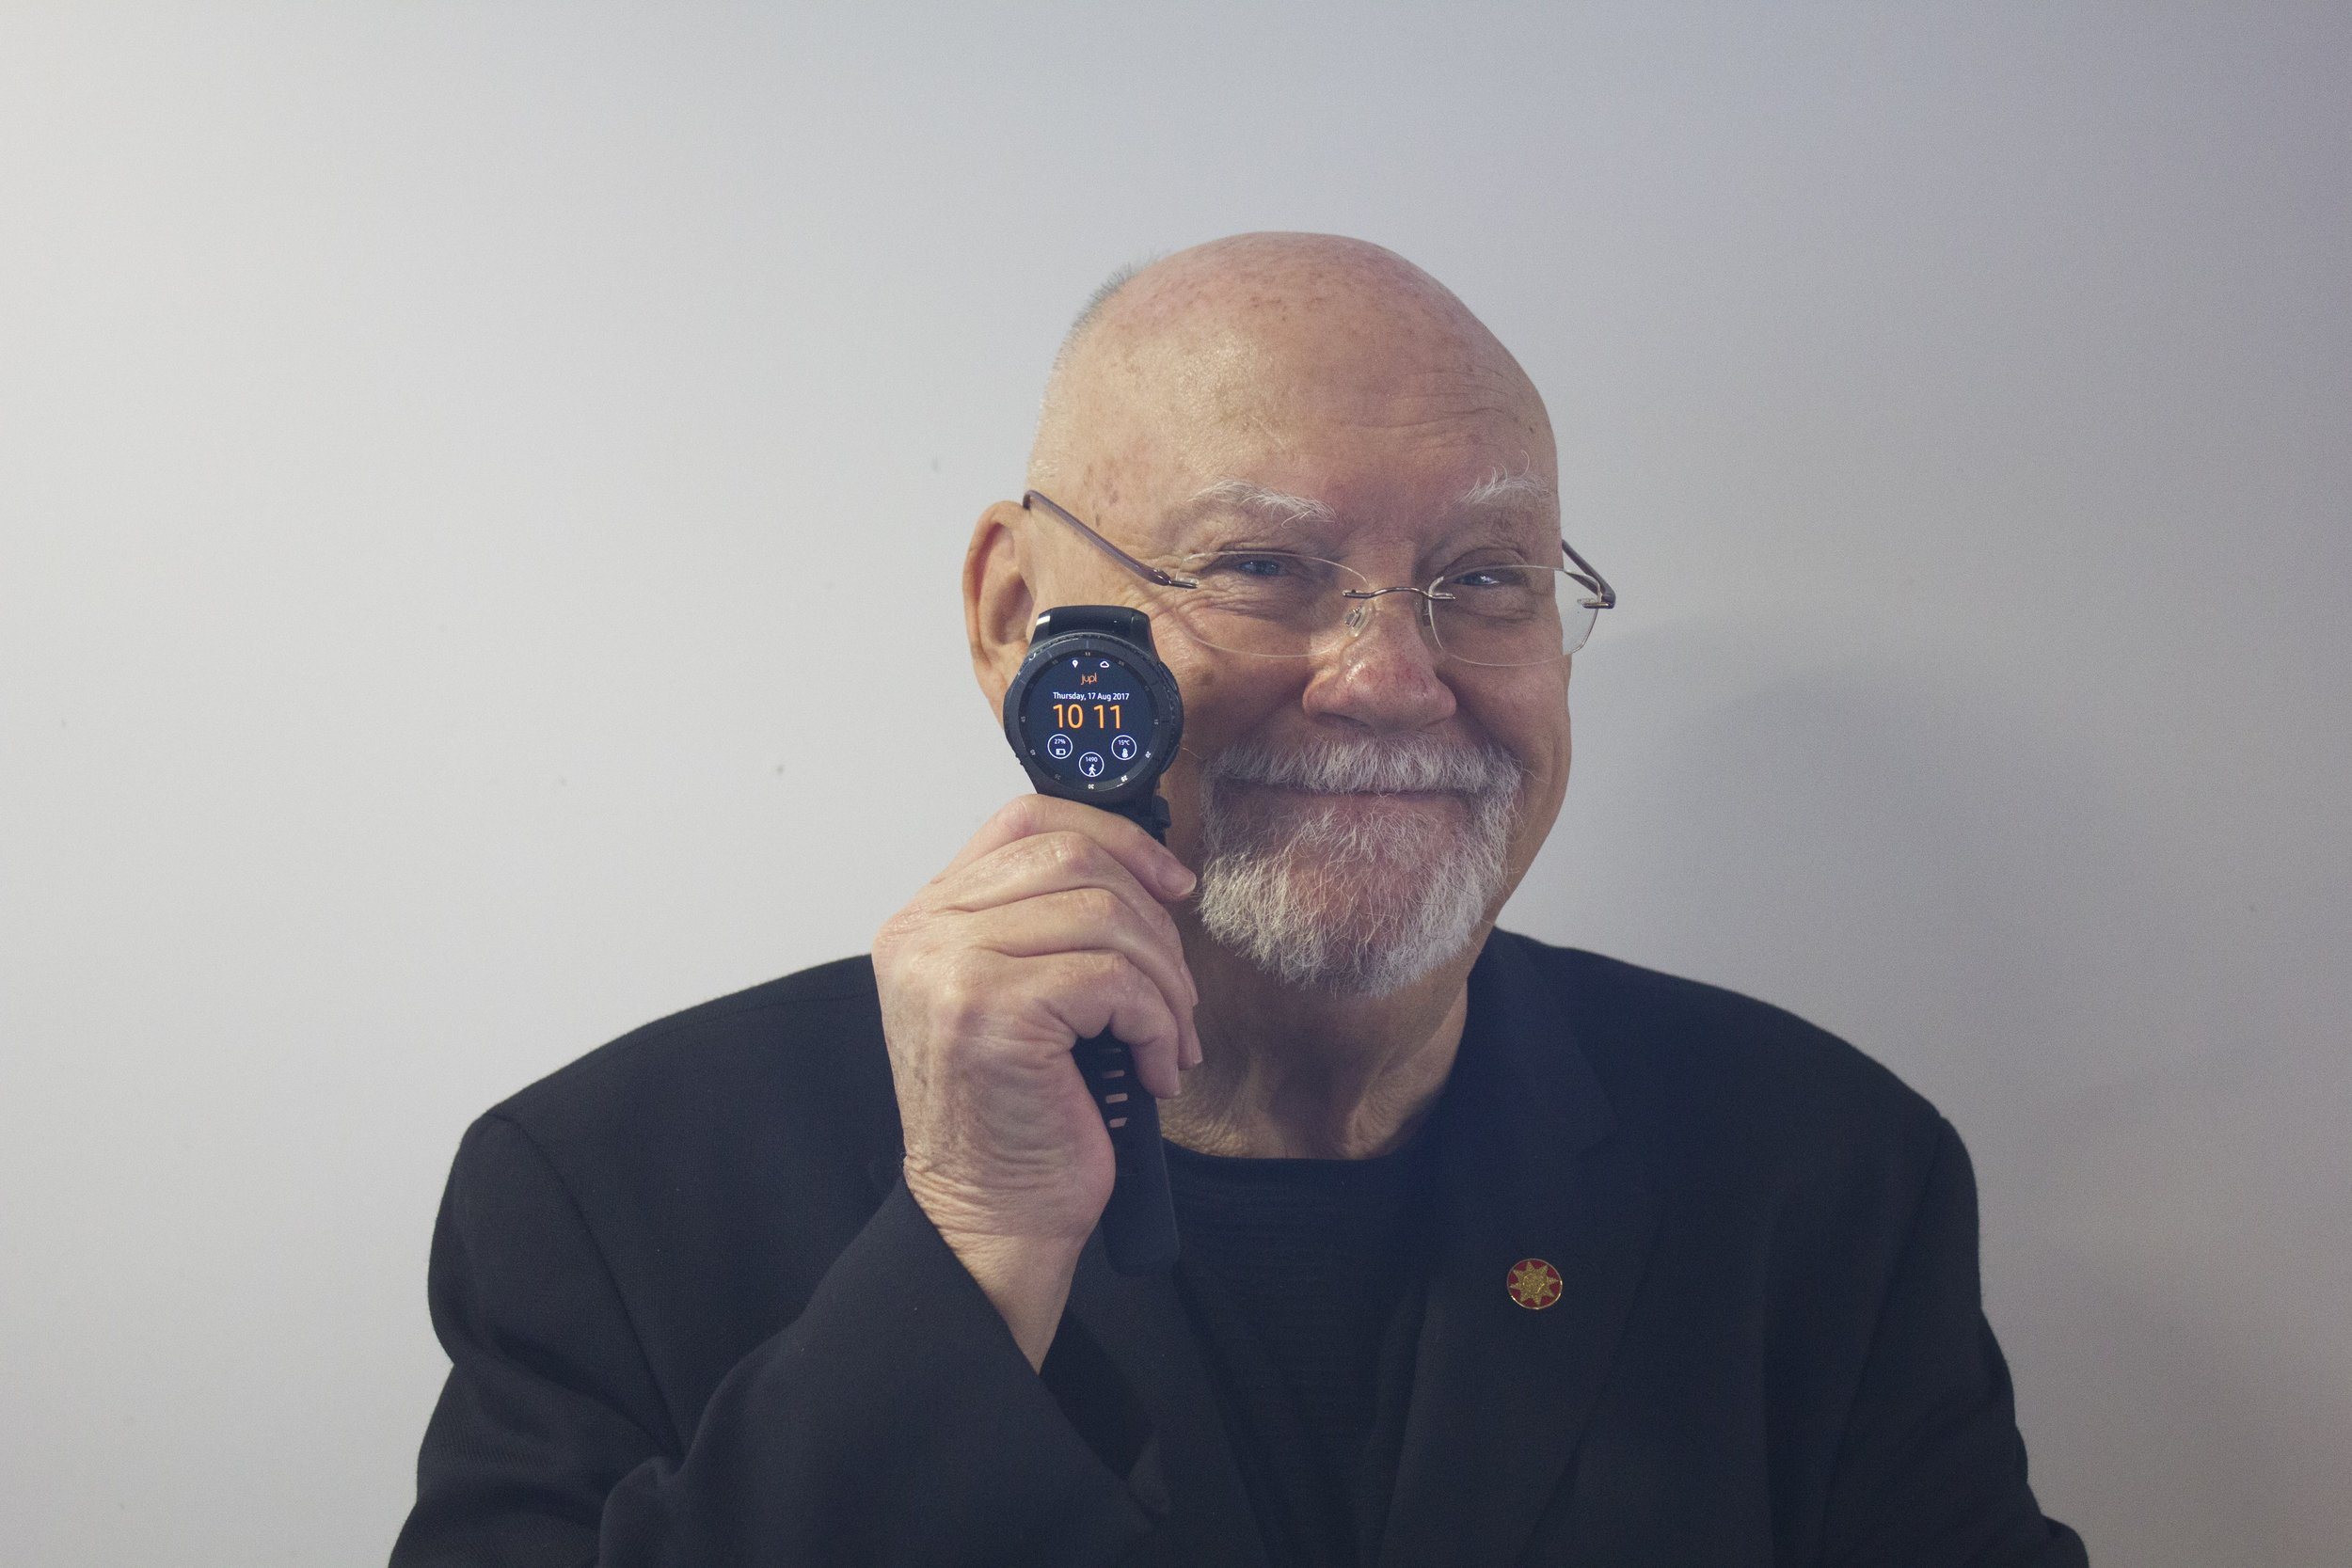 Sir Ray Avery holding the Jupl Safety Watch